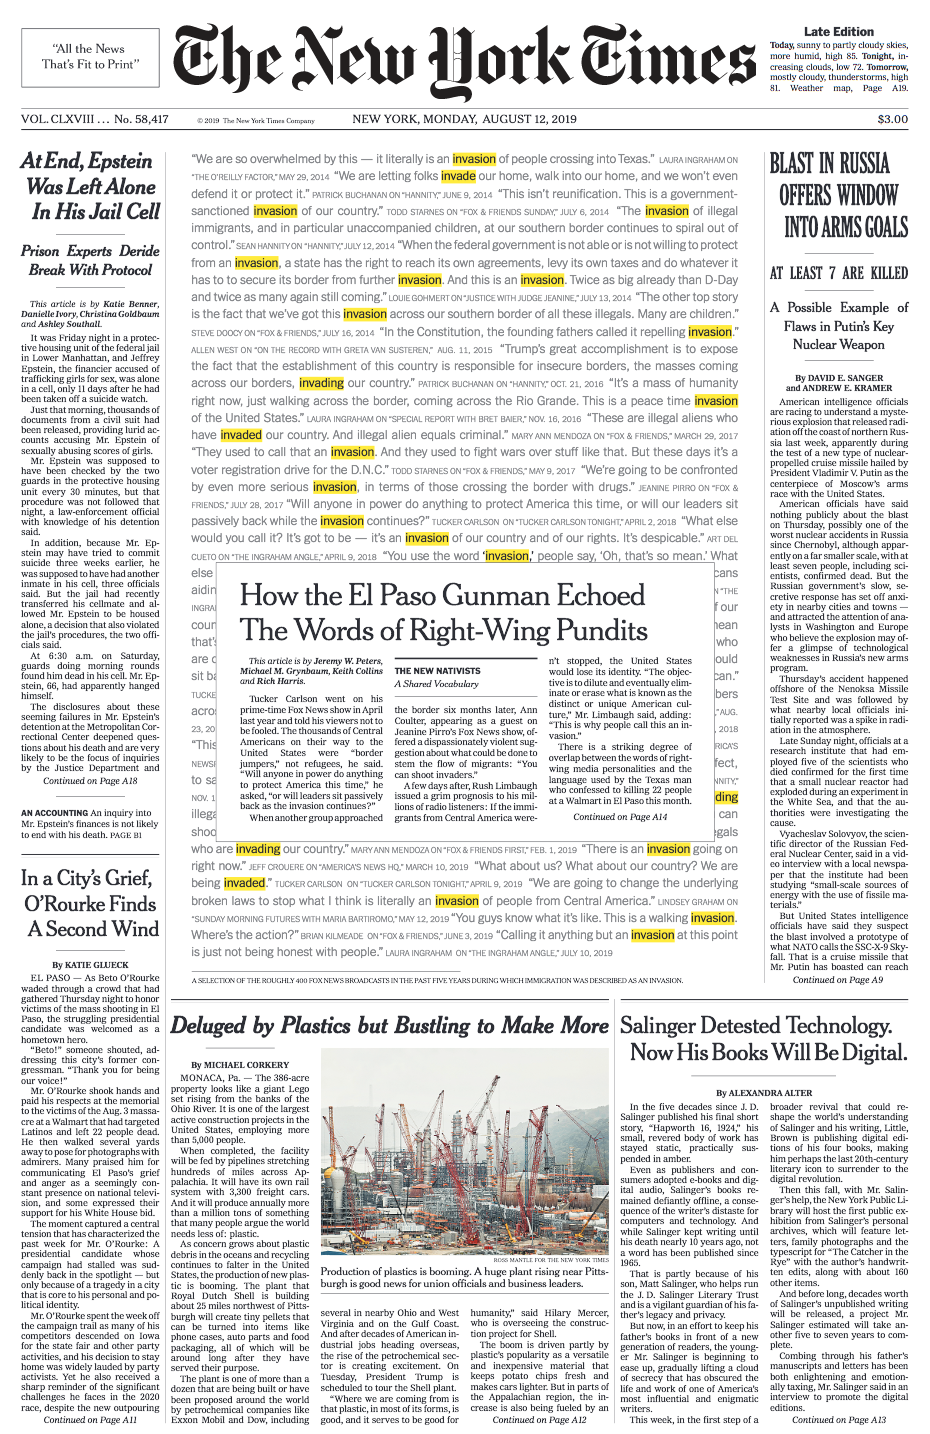 NYT_FrontPage_081219.png